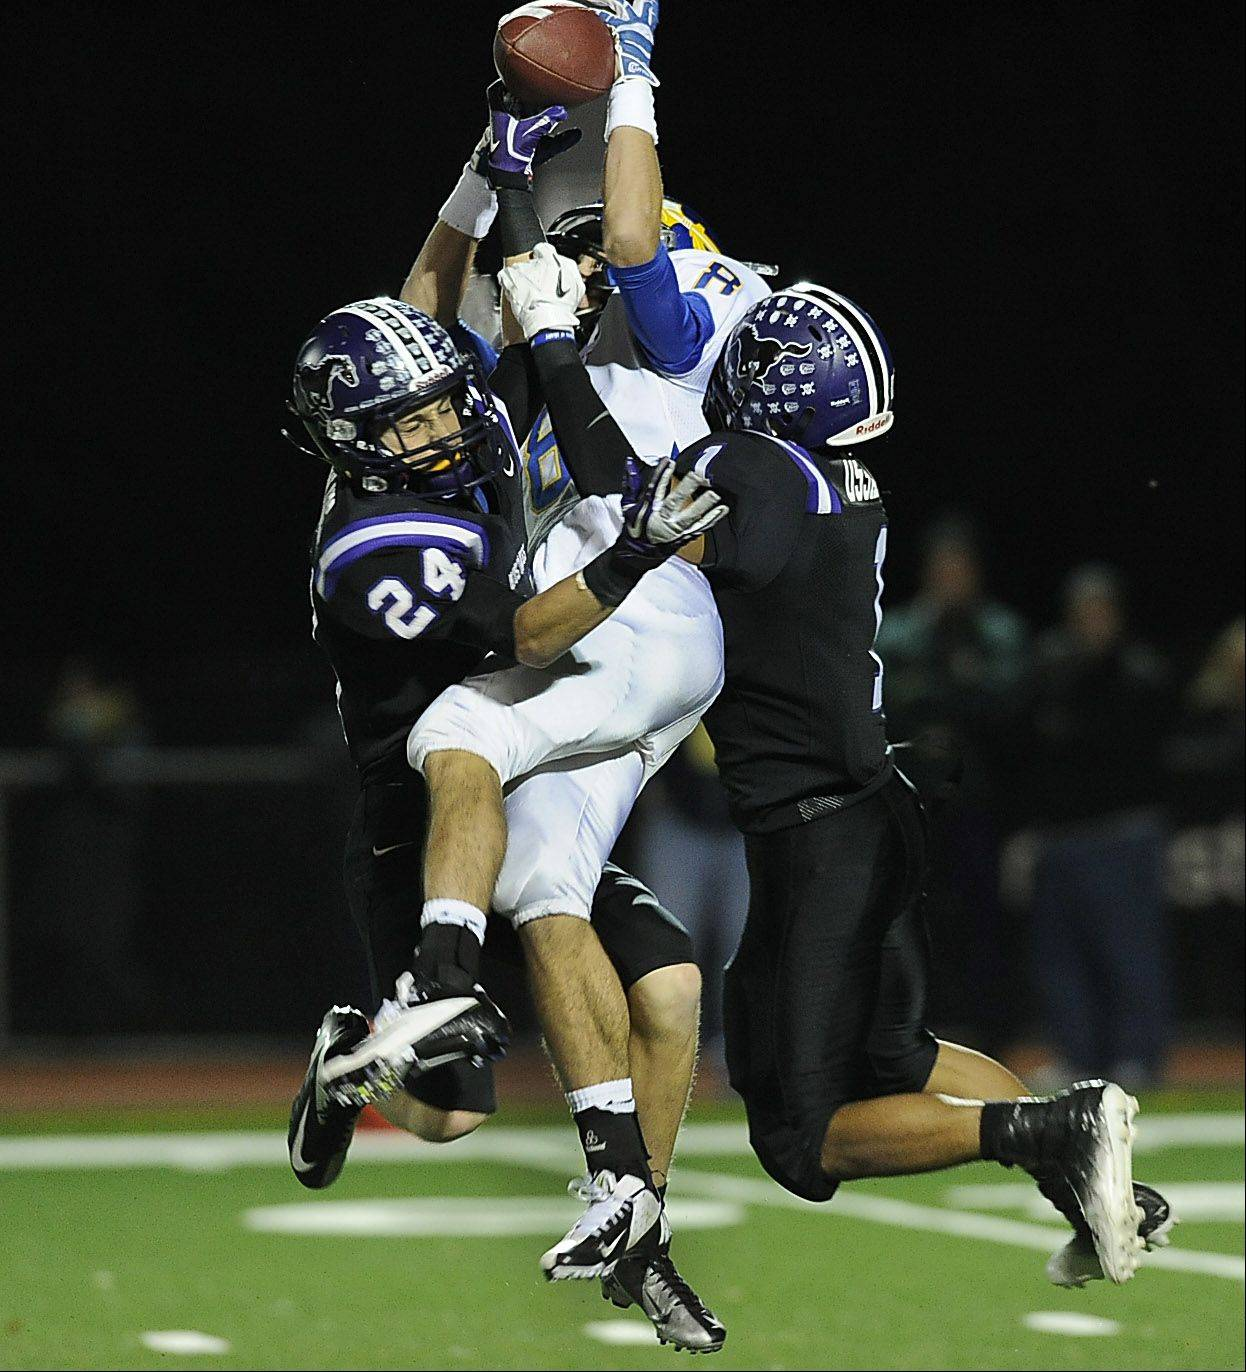 Rolling Meadow's Luke Toenjes and Christian Ossario sandwich Lake Forest's Jack Troller during a pass play in Friday's Class 6A playoff football game in Rolling Meadows.